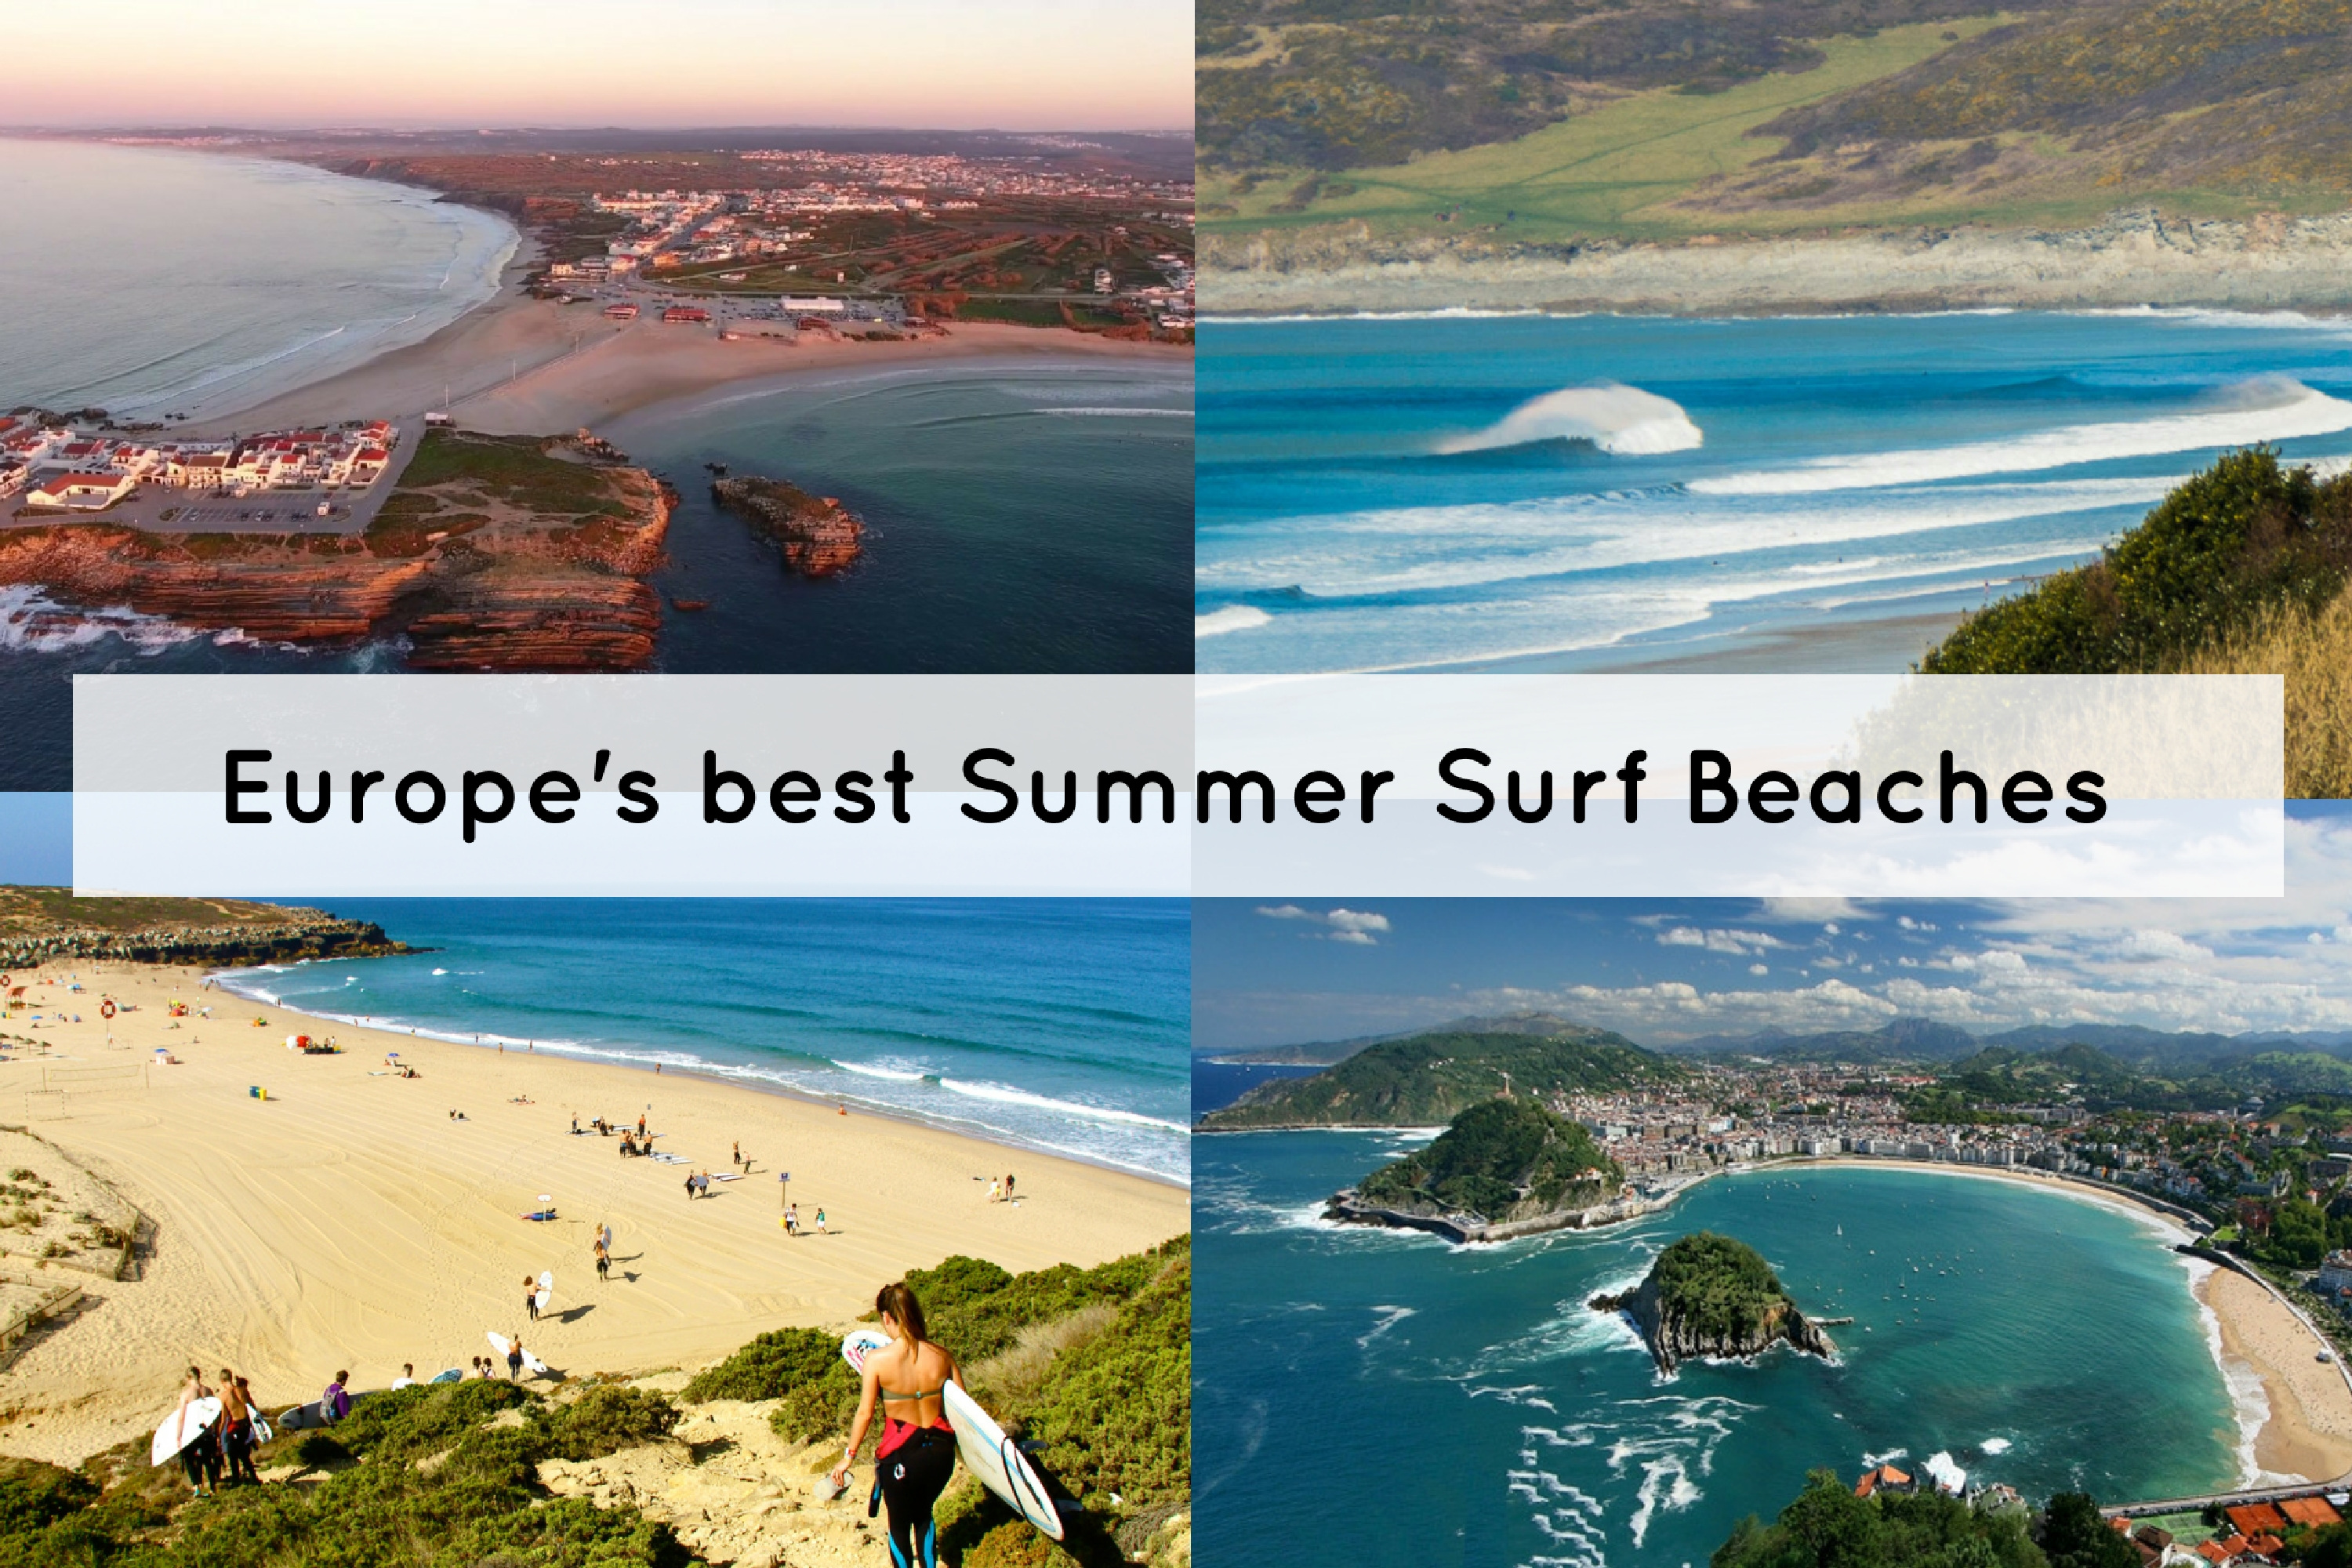 Top 5 Summer Surf Beaches in Europe